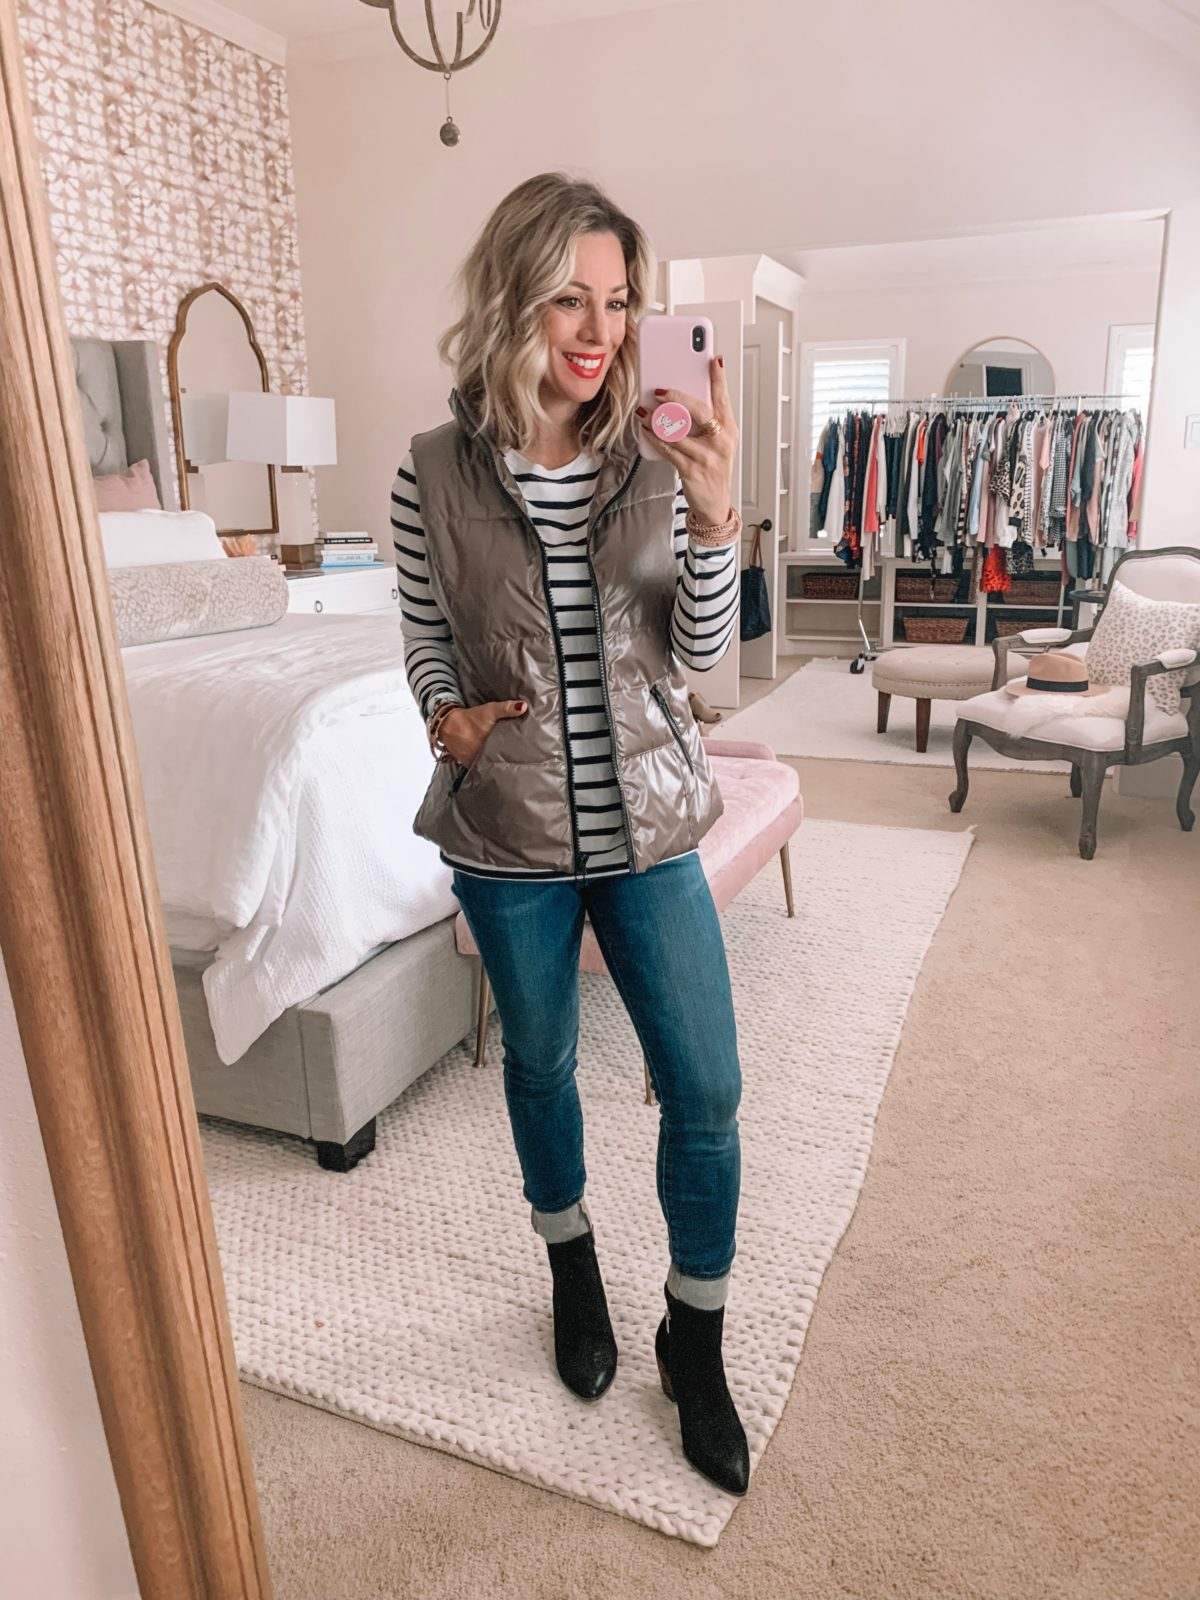 Amazon Prime Fashion- Striped Top, Vest and Jeans